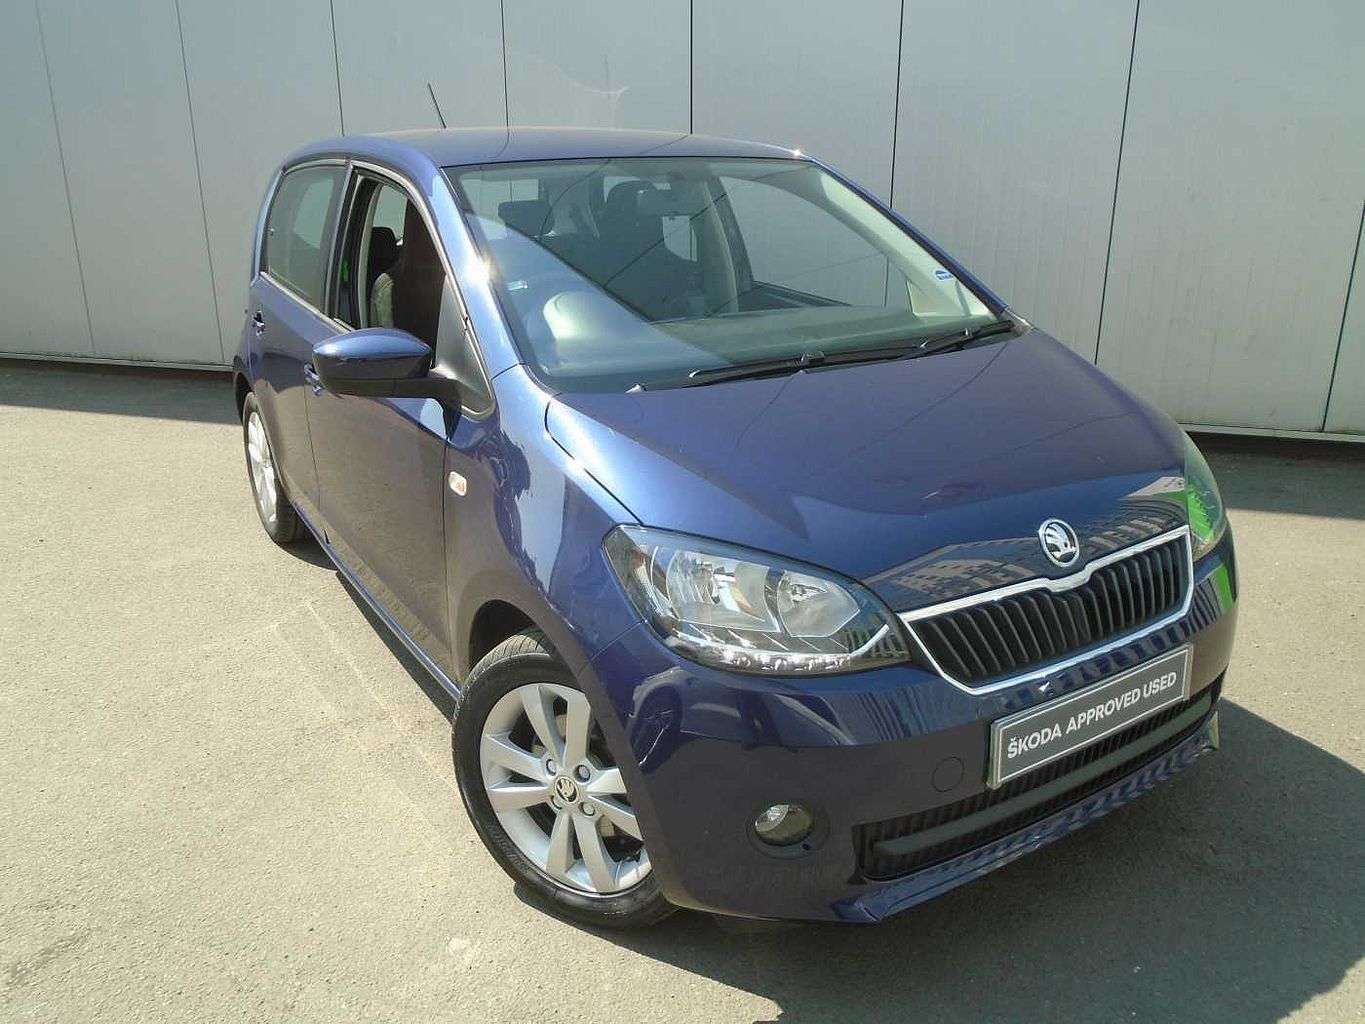 ŠKODA Citigo 1.0 MPI (75PS) SE L GreenTech Hatchback 3Dr